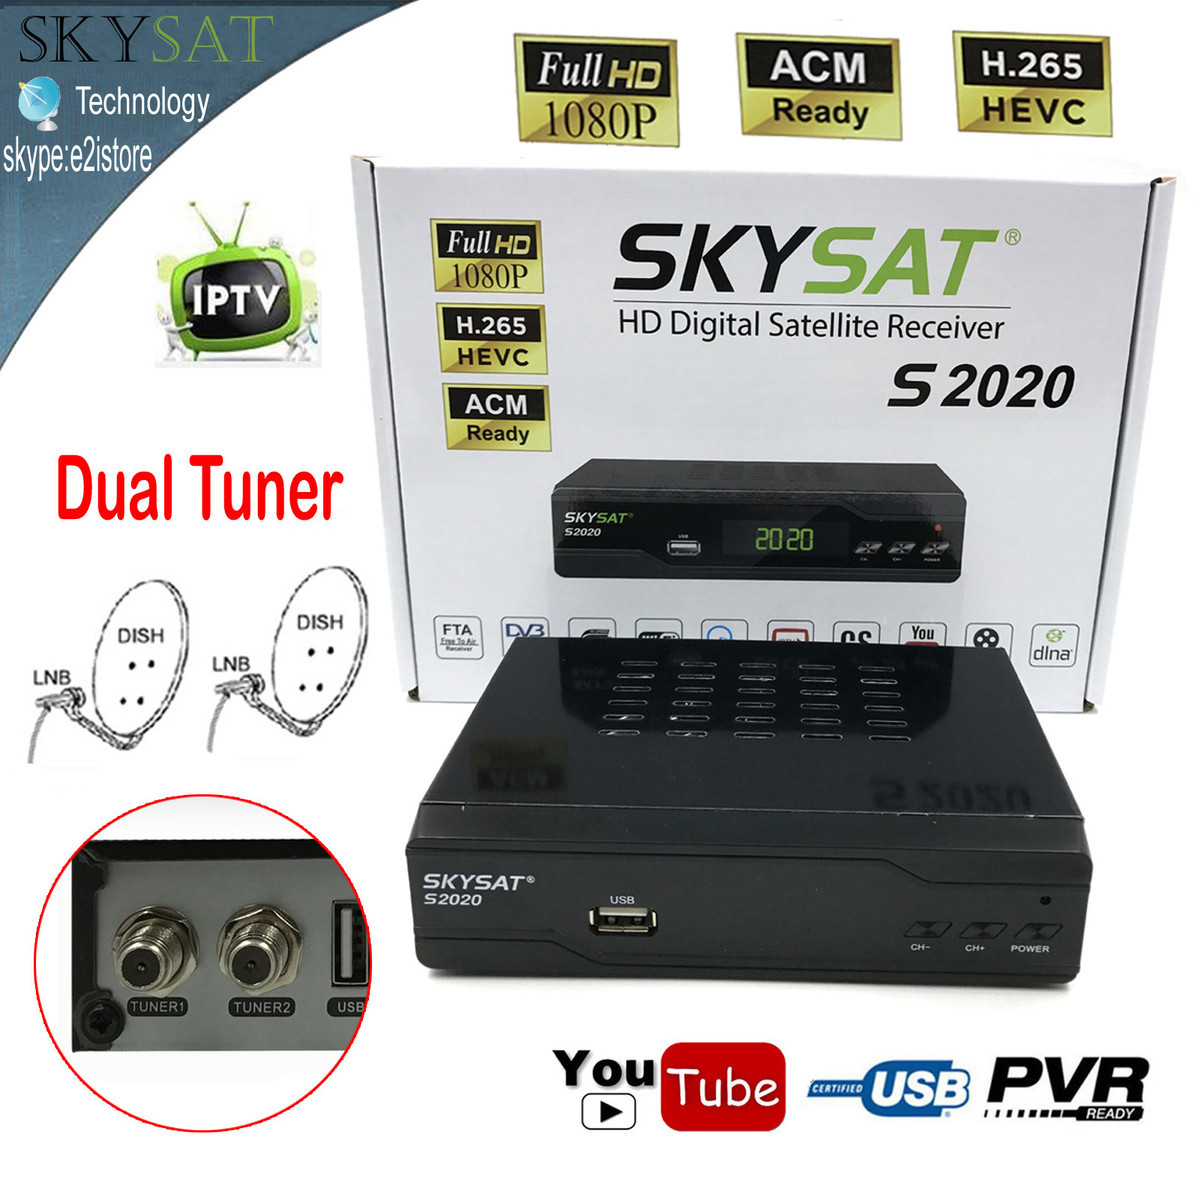 цена на H.265 South America ACM Digital Satellite Receiver Twin Dish Tuner AVC MPEG-4 Support IKS SKS VCM/CCM IPTV with LAN Wifi 2G DDR3